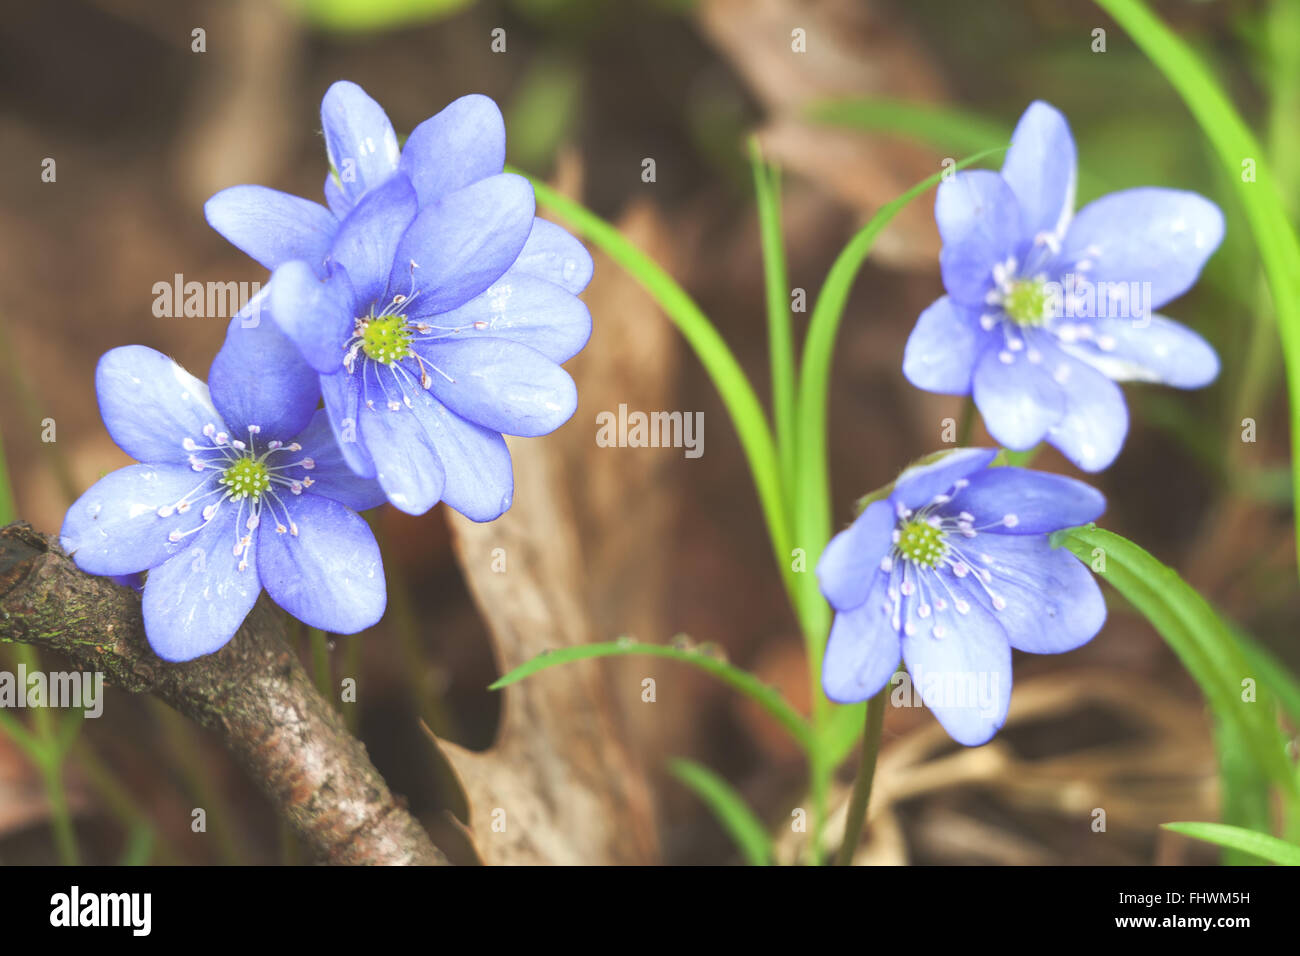 Early spring flowers blue hepatica or snowdrop in its natural early spring flowers blue hepatica or snowdrop in its natural background growing on a forest floor dhlflorist Choice Image